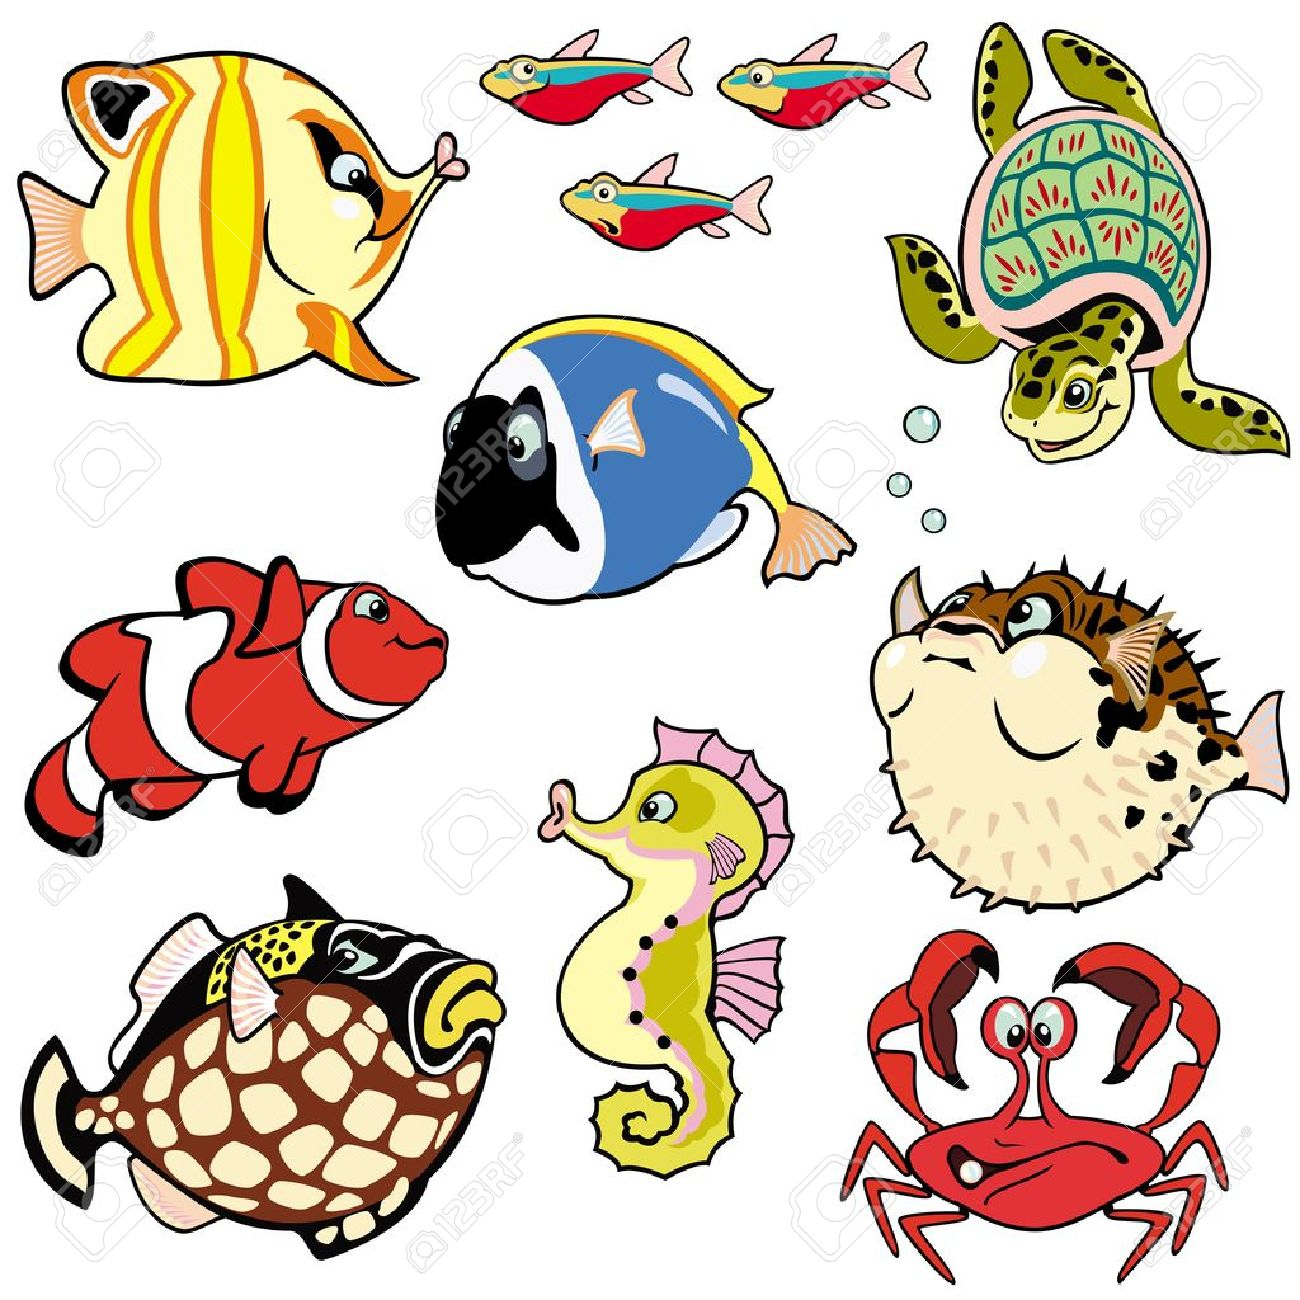 sea fishes and animals,set with cartoon pictures isolated on white background,children illustration,vector images Stock Vector - 16123127